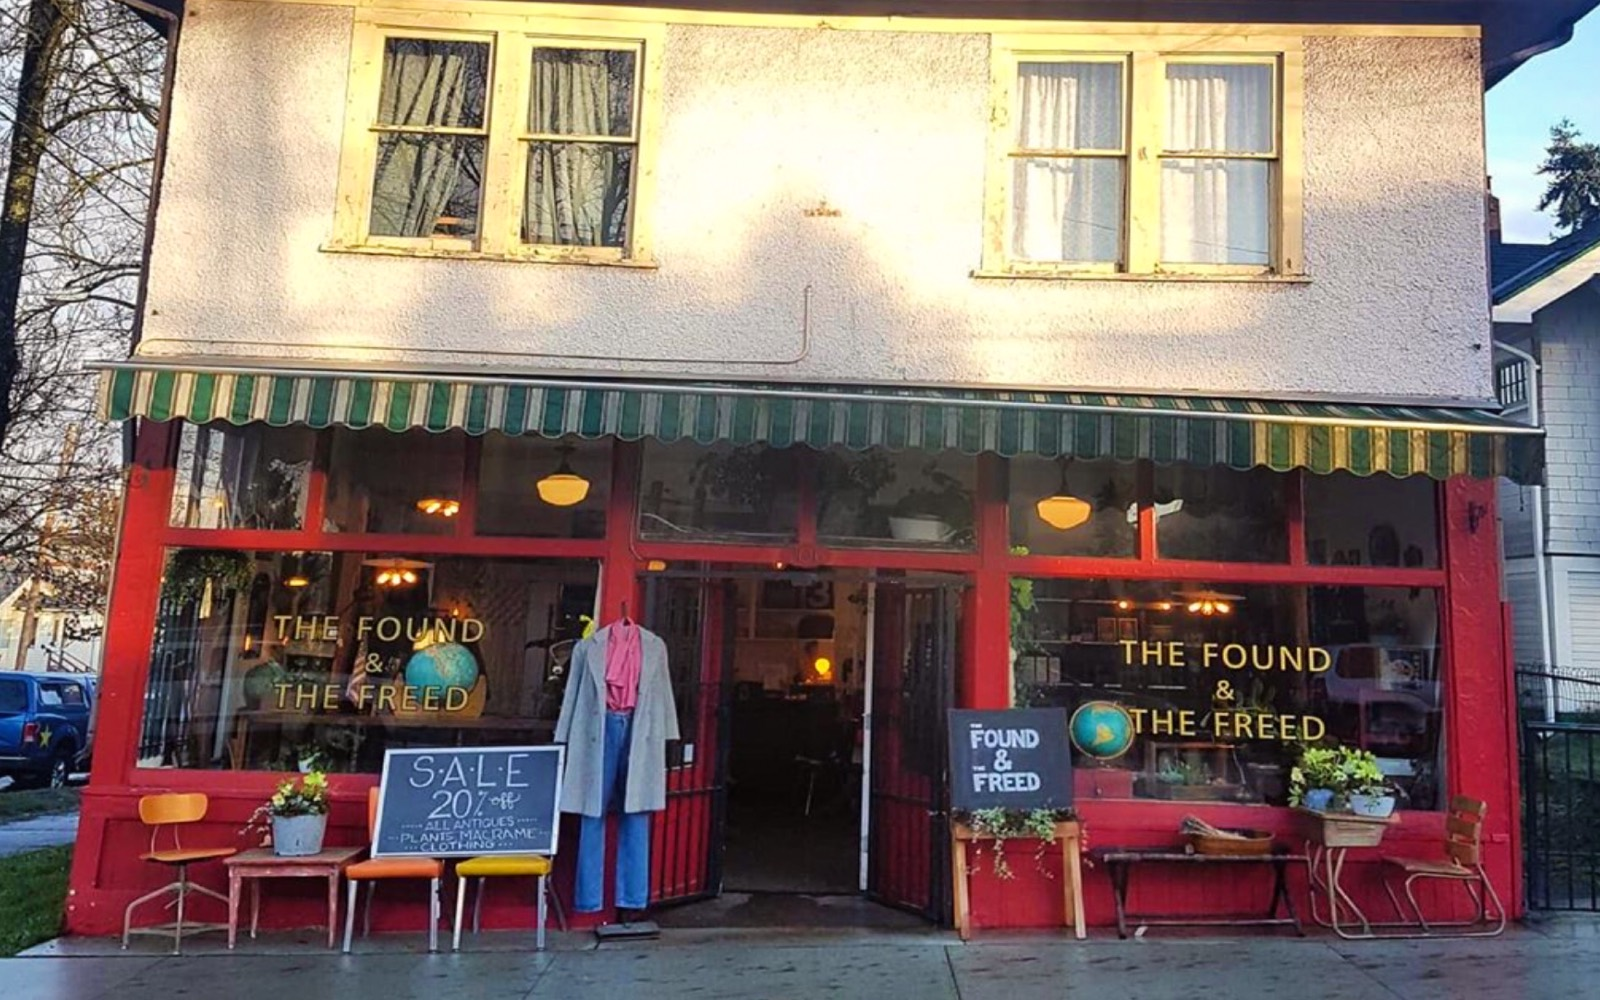 The entrance to Found and Freed, Commercial Drive